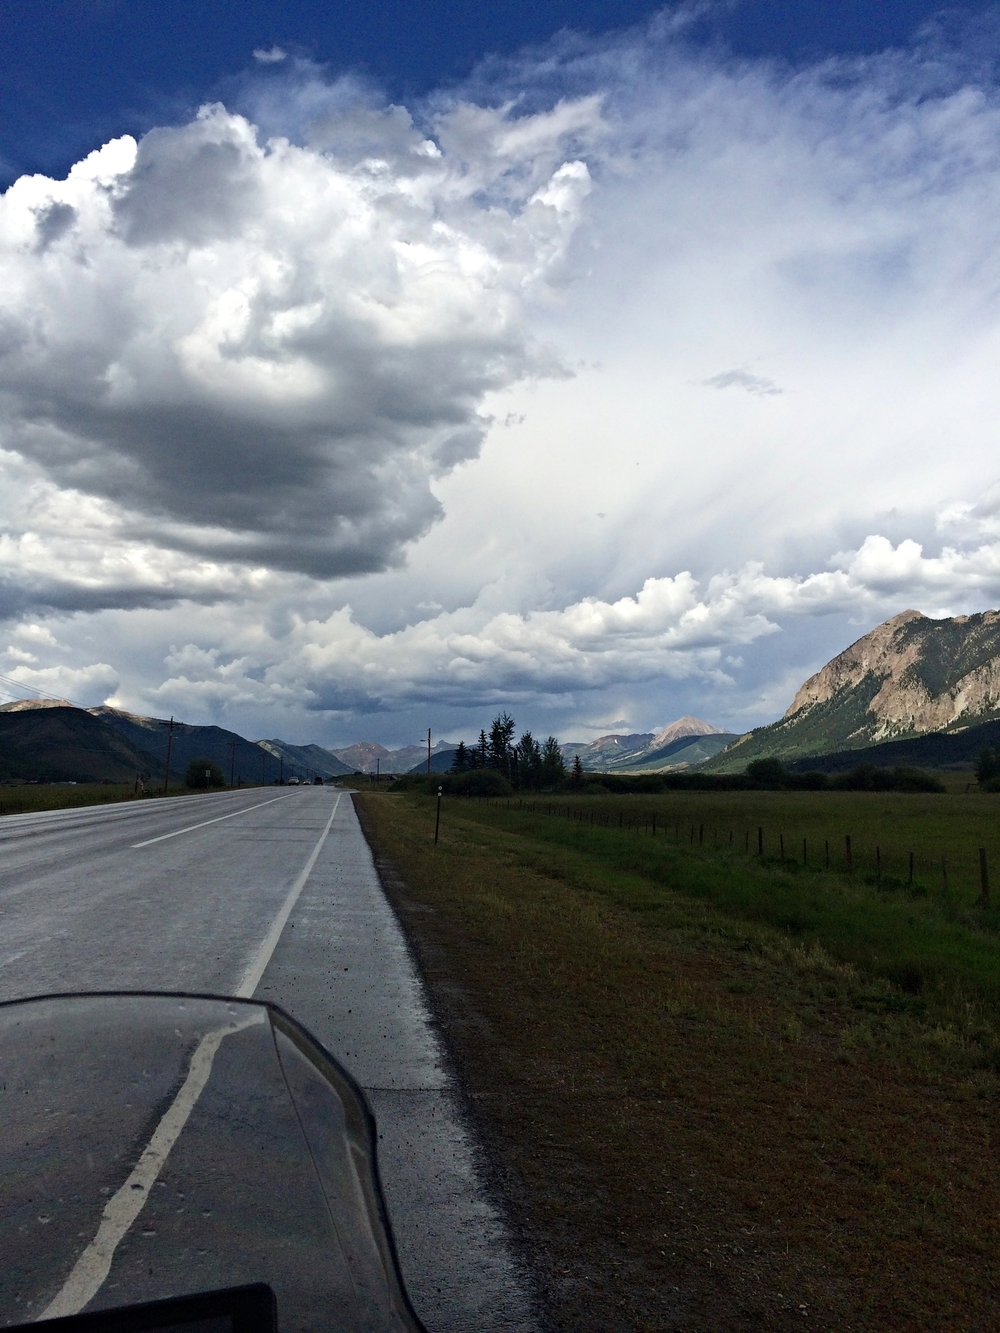 Storms on the way to Crested butte